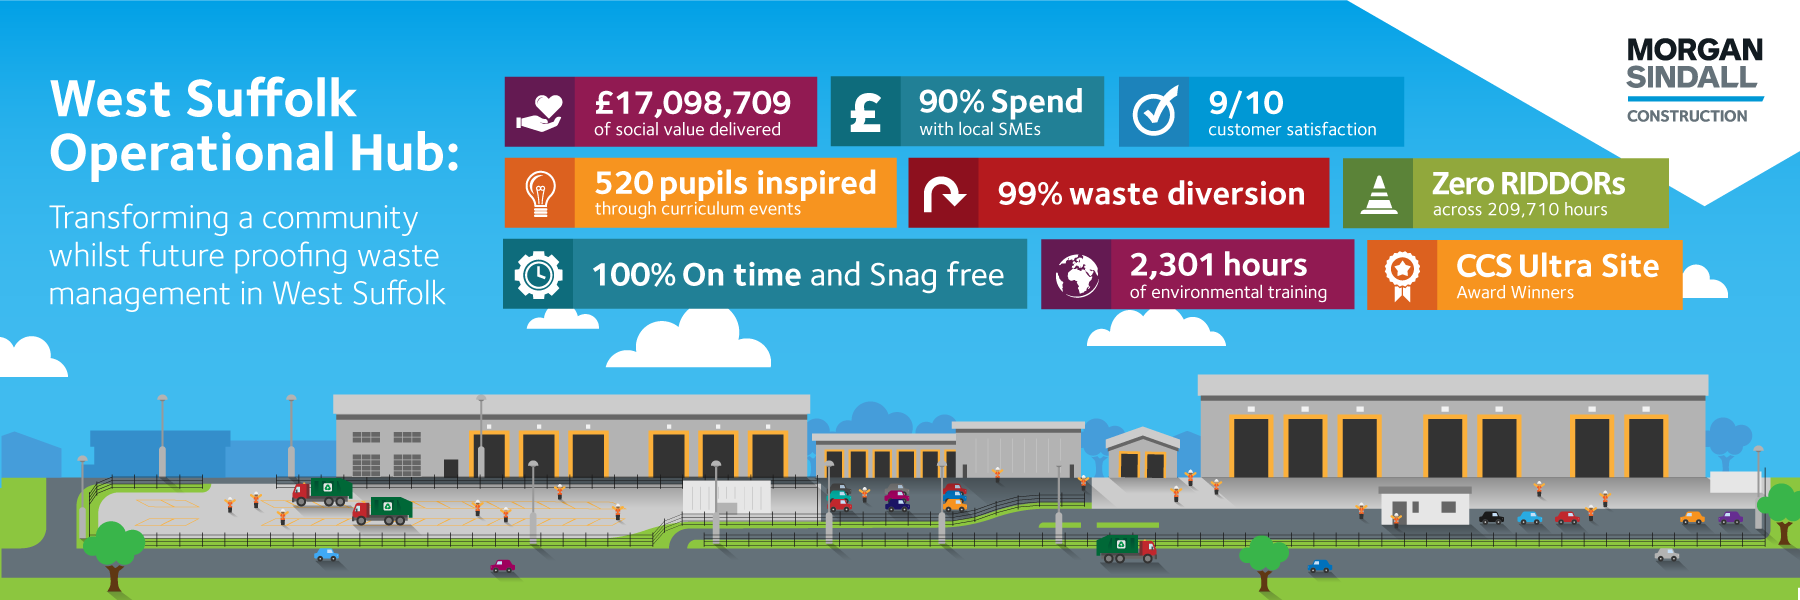 Statistics that show the social value delivered into the community by the West Suffolk Operational Hub project